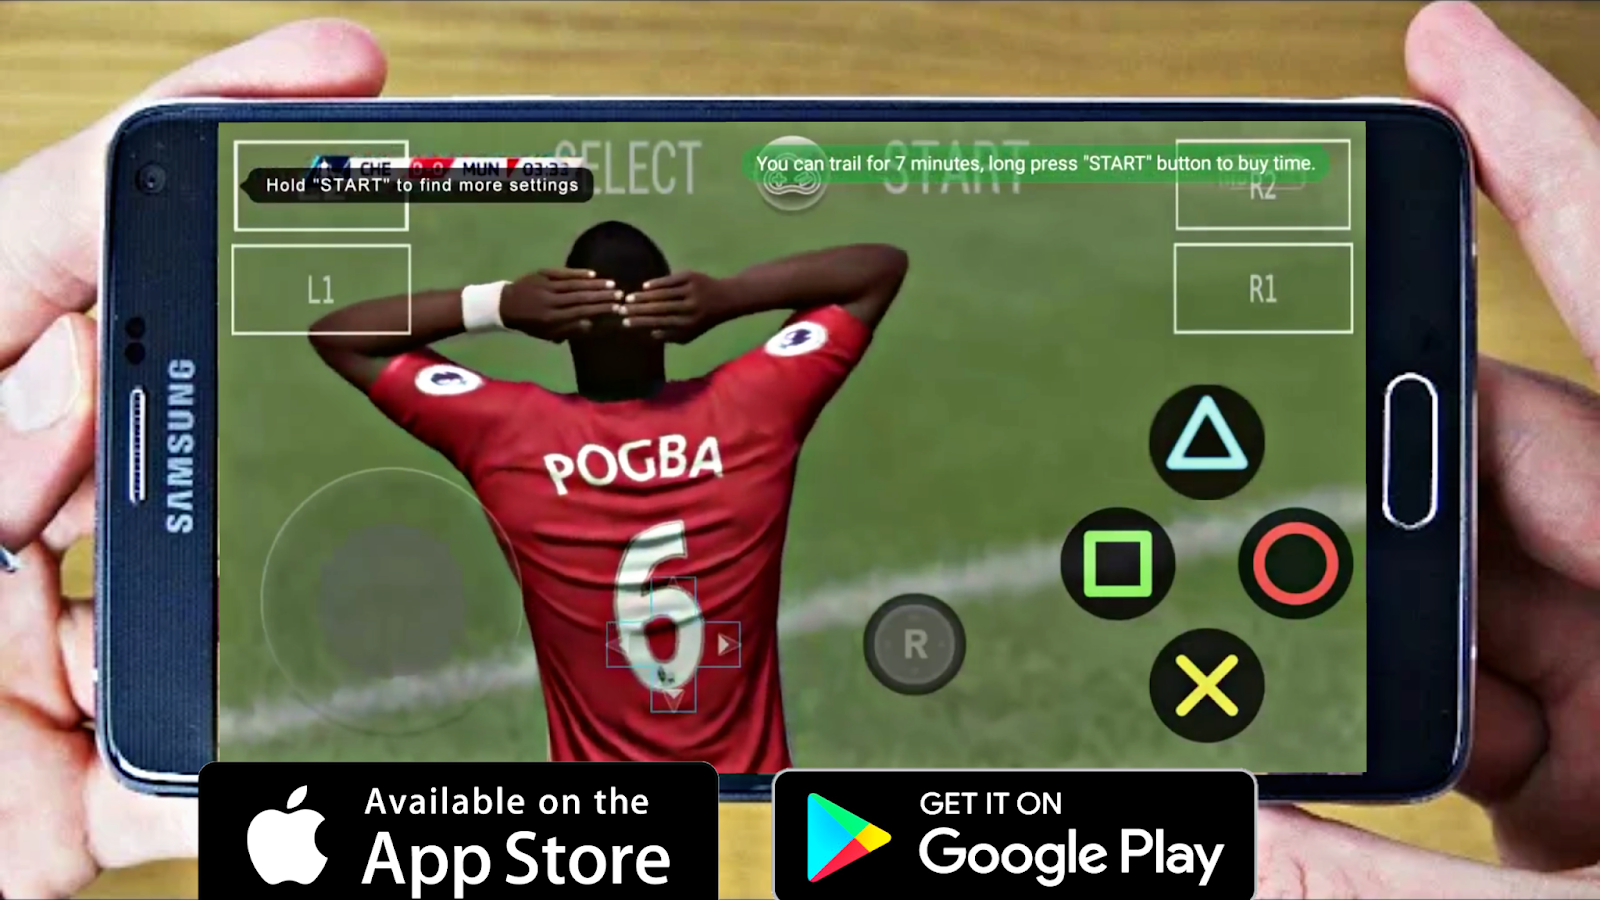 Download Gloud Games To Play Games Ps3 Xbox 360 For Android